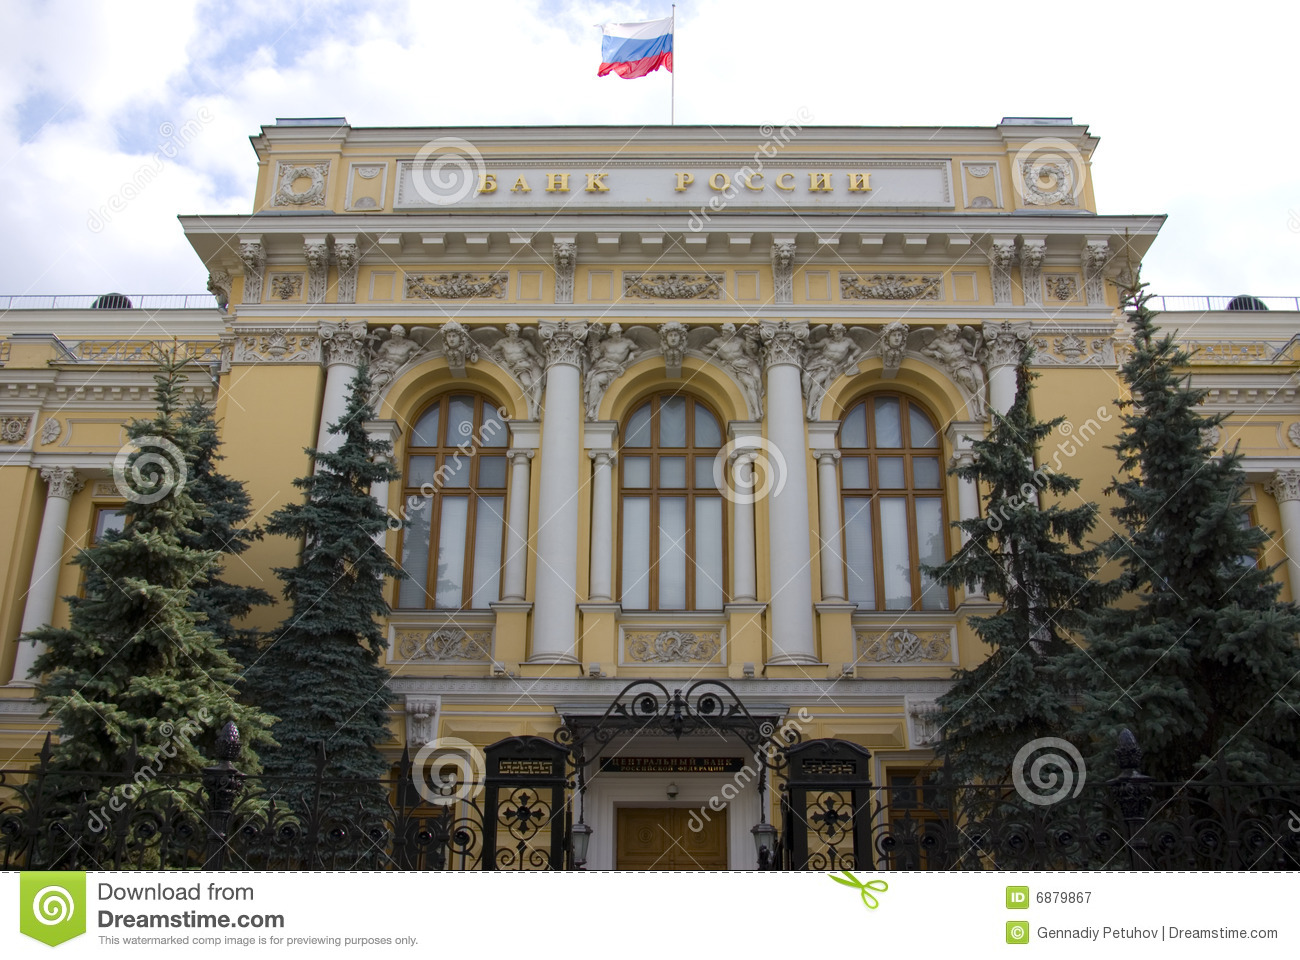 The central bank of russia - d0